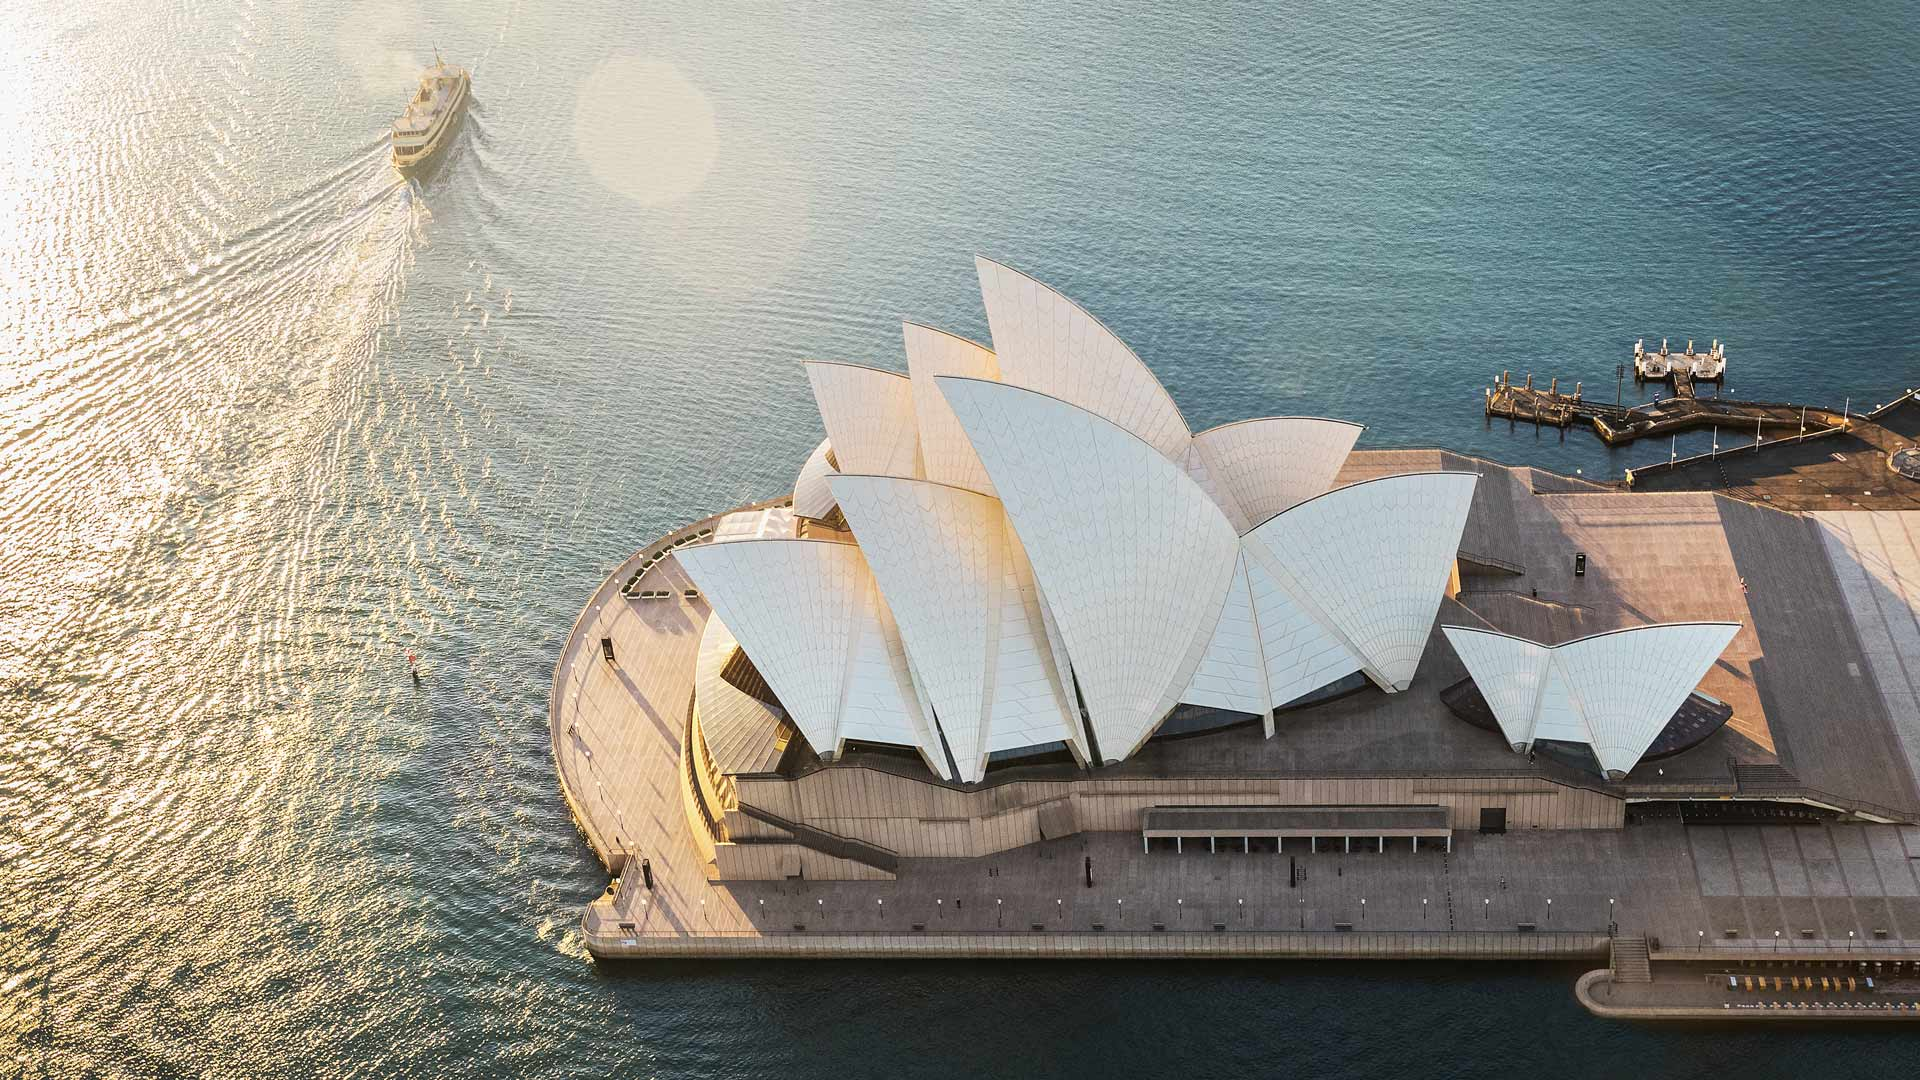 The Sydney Opera House Has Cancelled All Public Performances Until At Least June 17